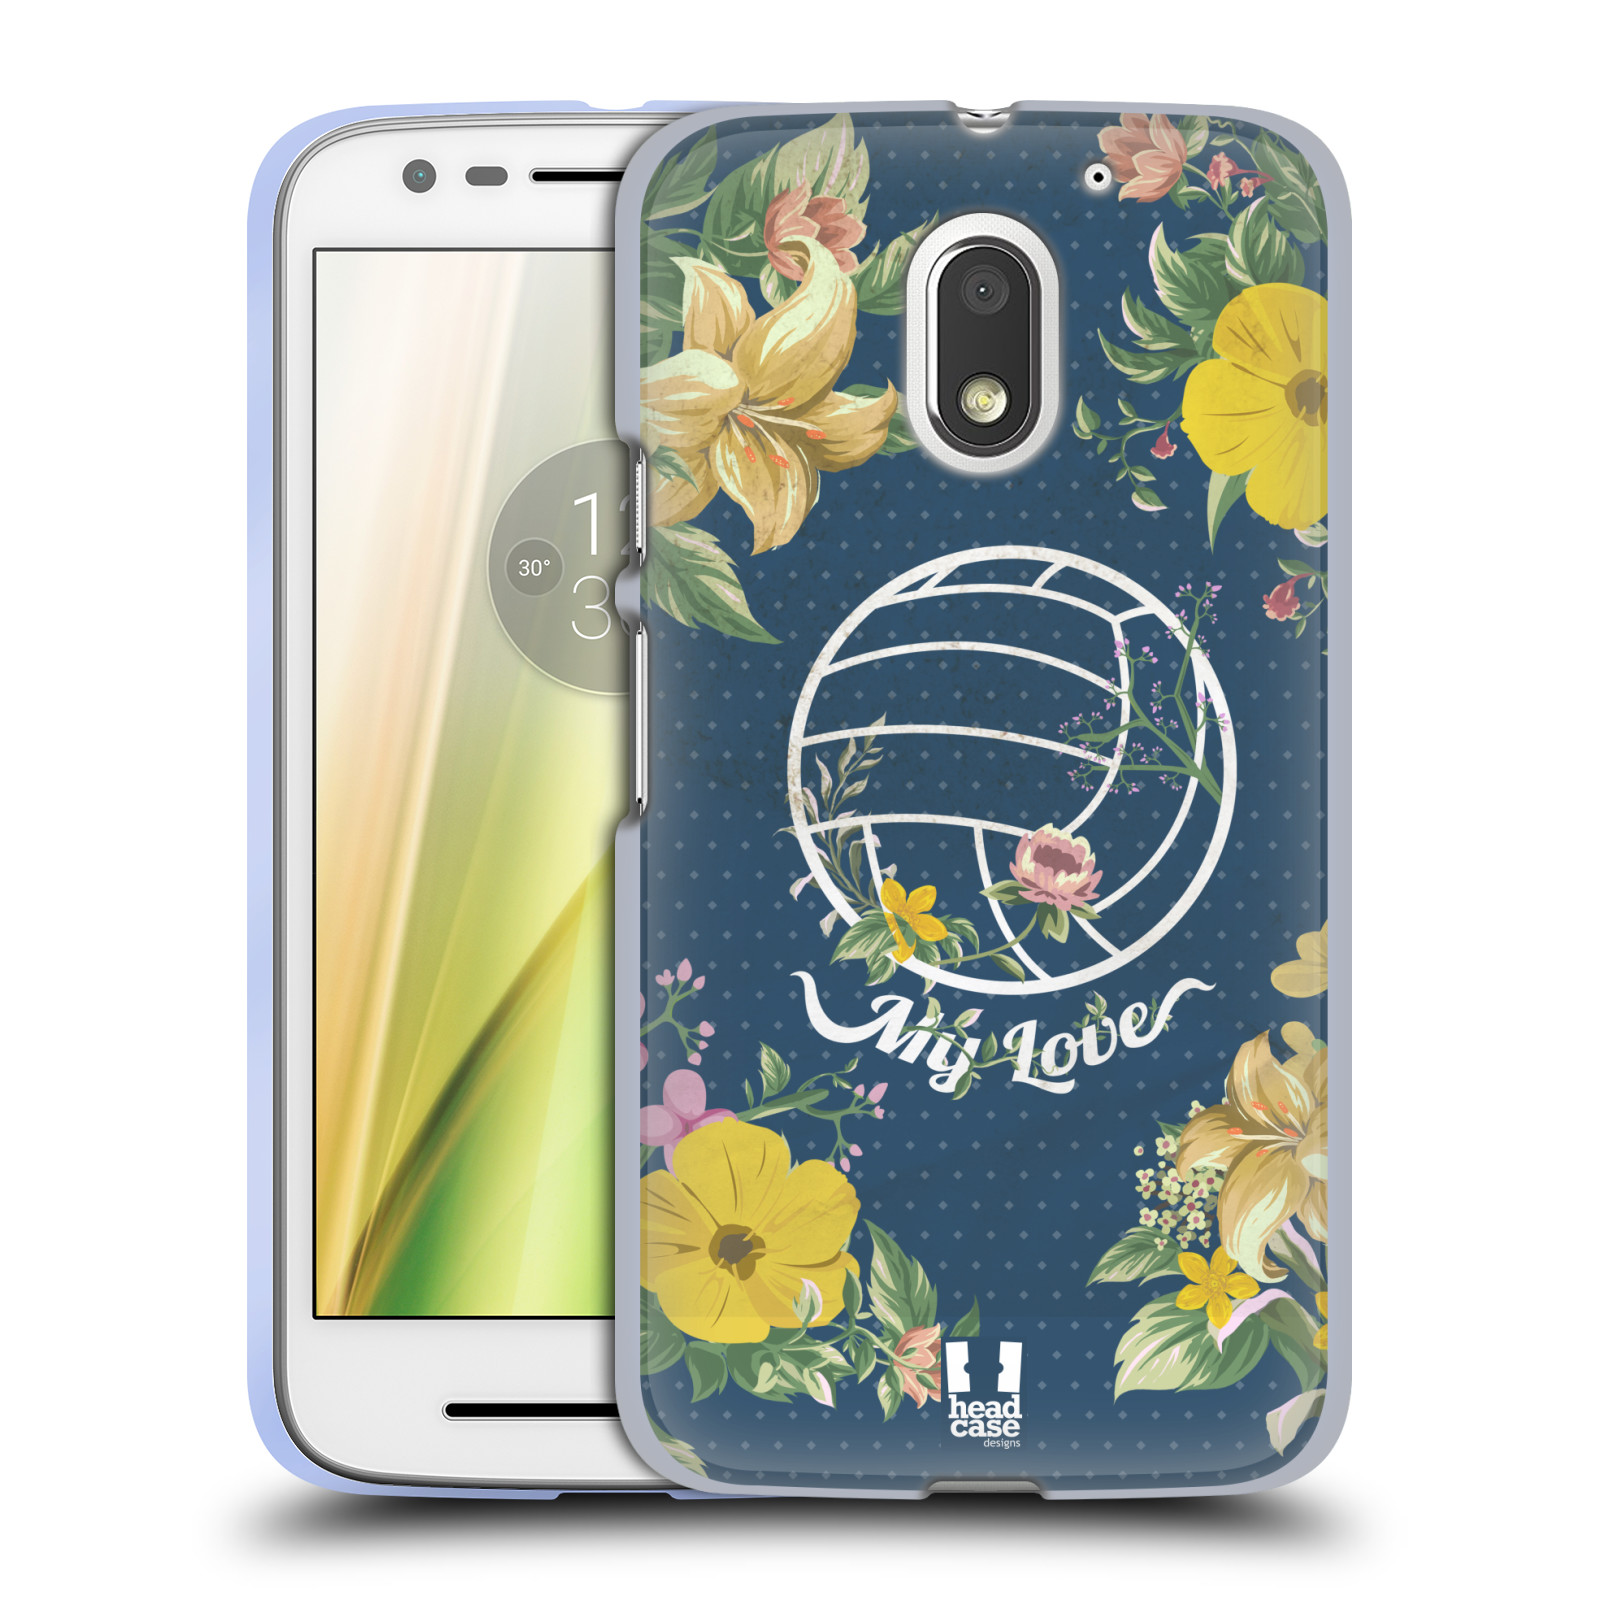 HEAD-CASE-DESIGNS-FIORI-E-SPORT-COVER-MORBIDA-IN-GEL-PER-MOTOROLA-MOTO-E3-POWER